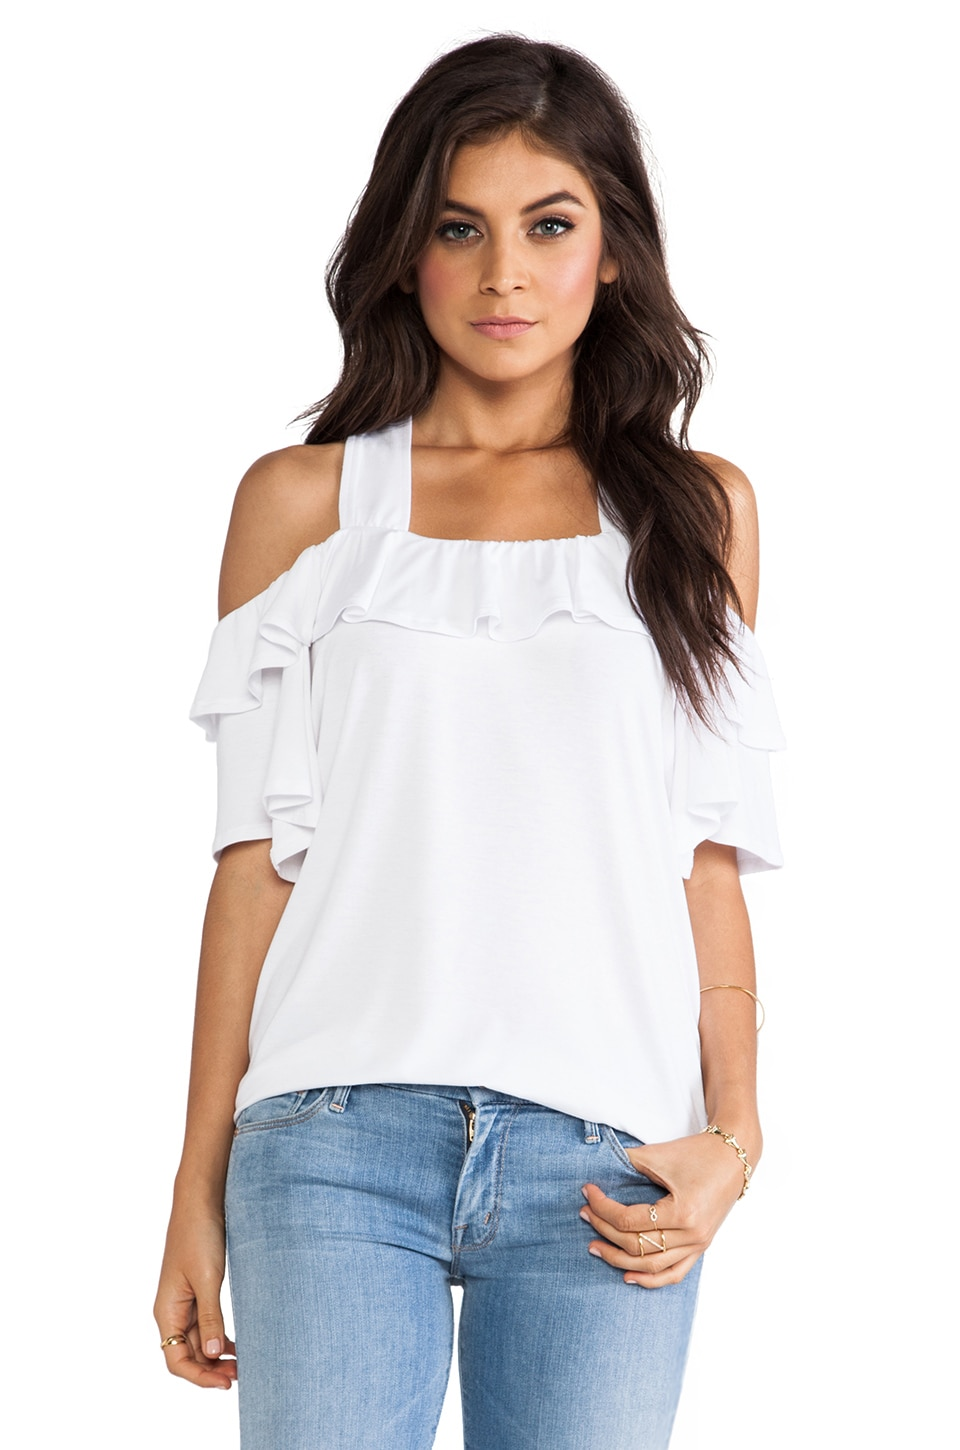 James & Joy Eunice Top in White